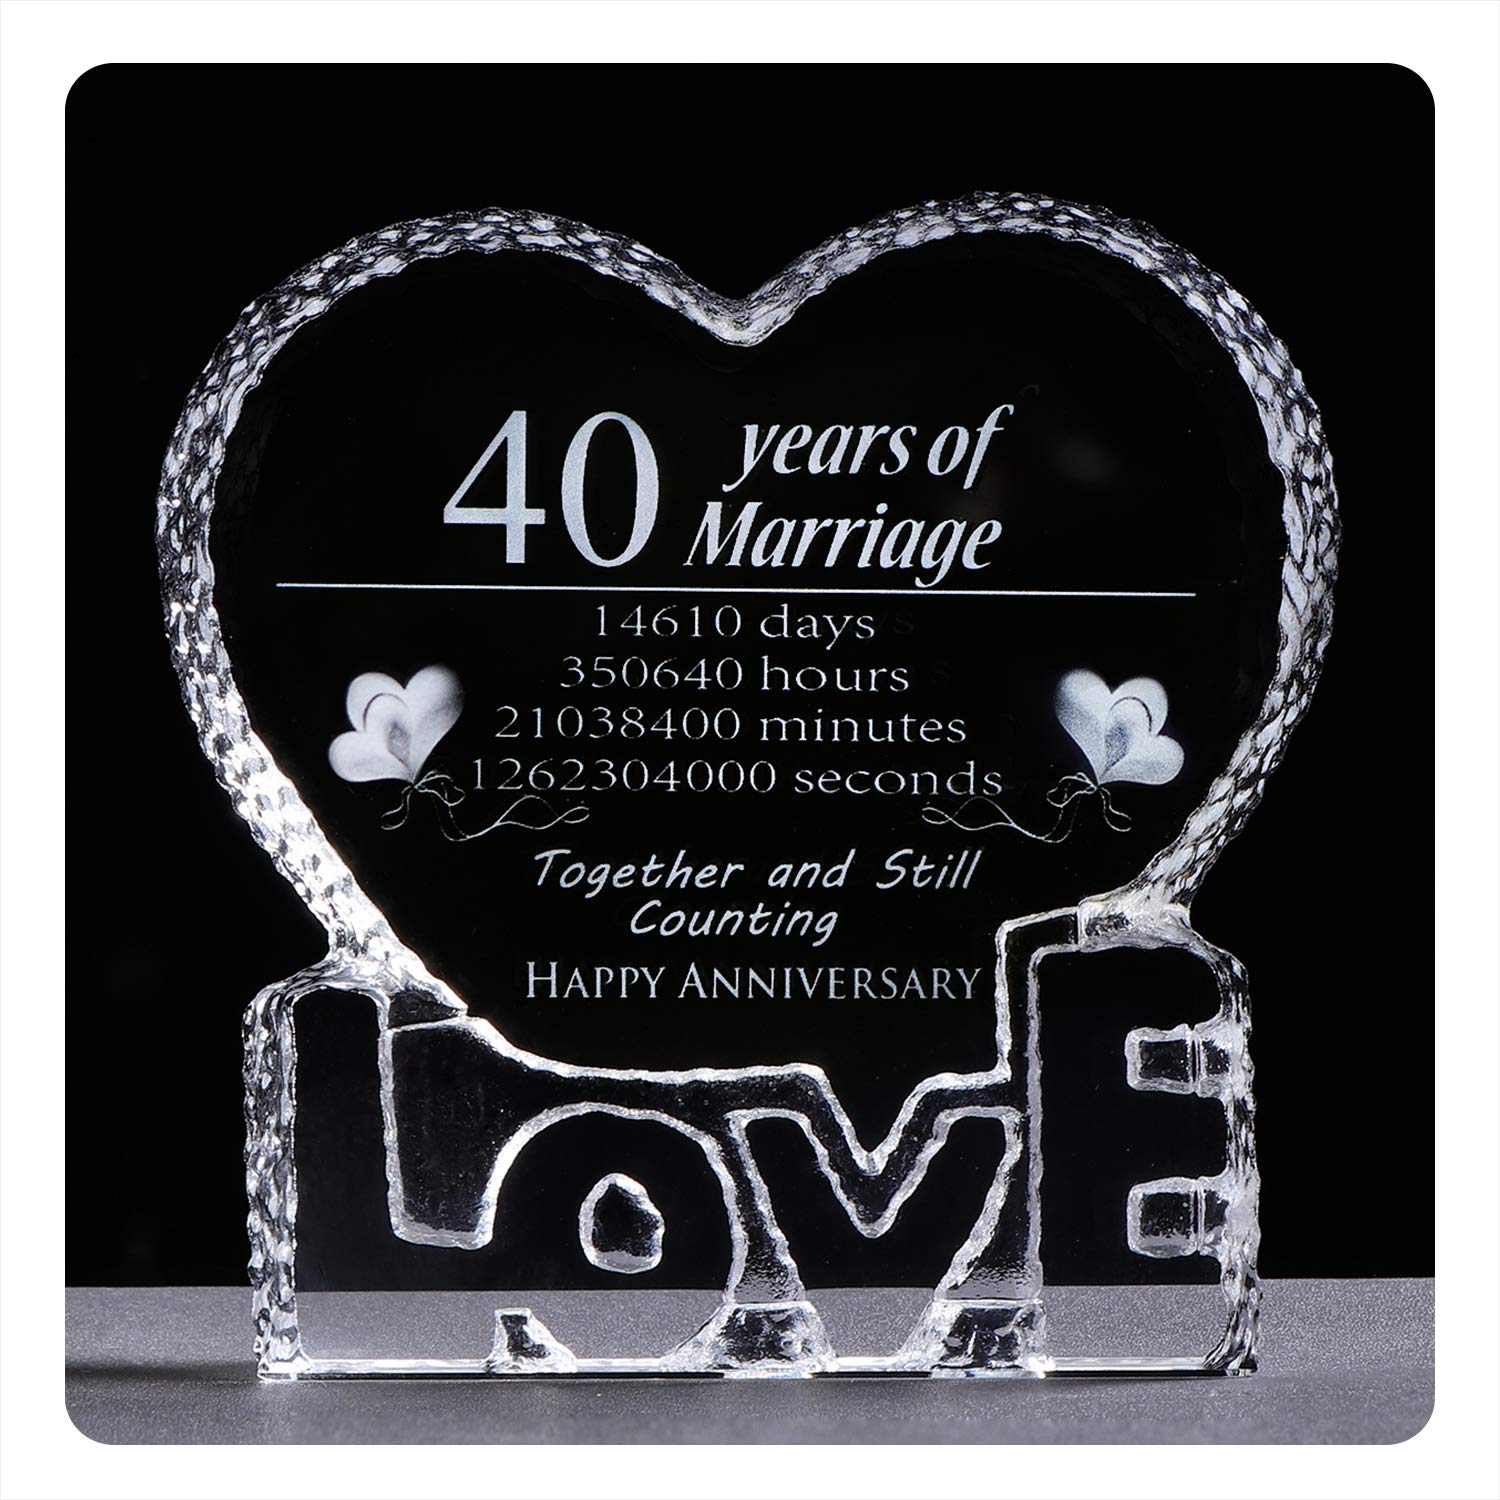 YWHL 40 Year Wedding 40th Anniversary Crystal Sculpture Keepsake Gifts for Her Wife Girlfriend Him Husband (40th Year)